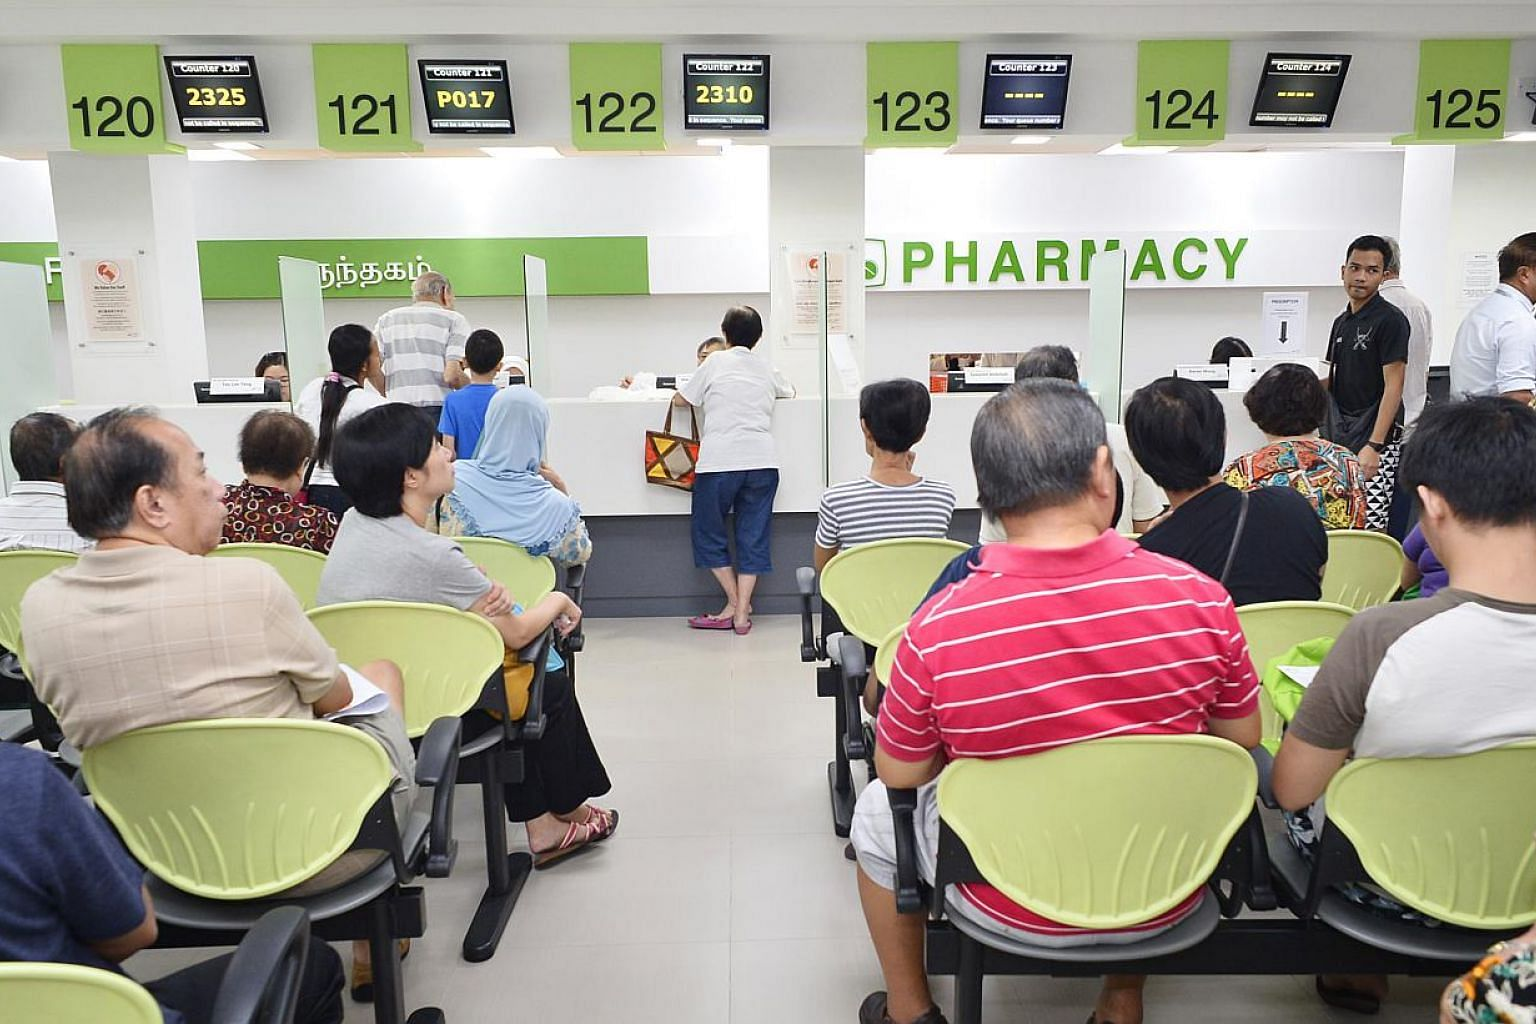 Patients waiting for their medicine at the pharmacy of Tampines Polyclinic. Singaporean households who received MediShield Life letters with a deadline indicated are encouraged to confirm and update their household information by June 19, says the Mi